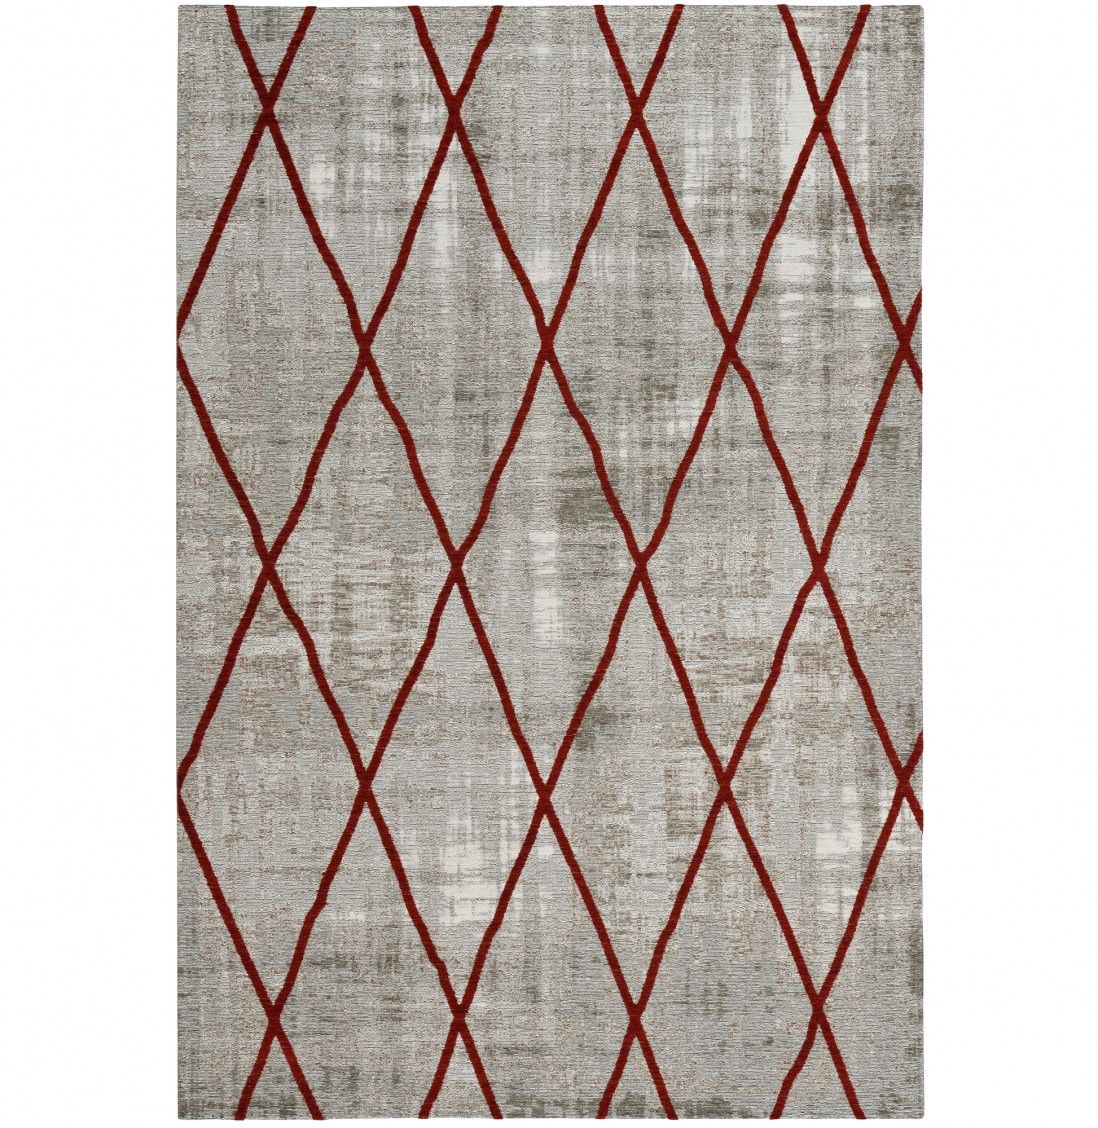 TAPETE ANTIK CHENILLE CROSS 140x200 SILVER/RED